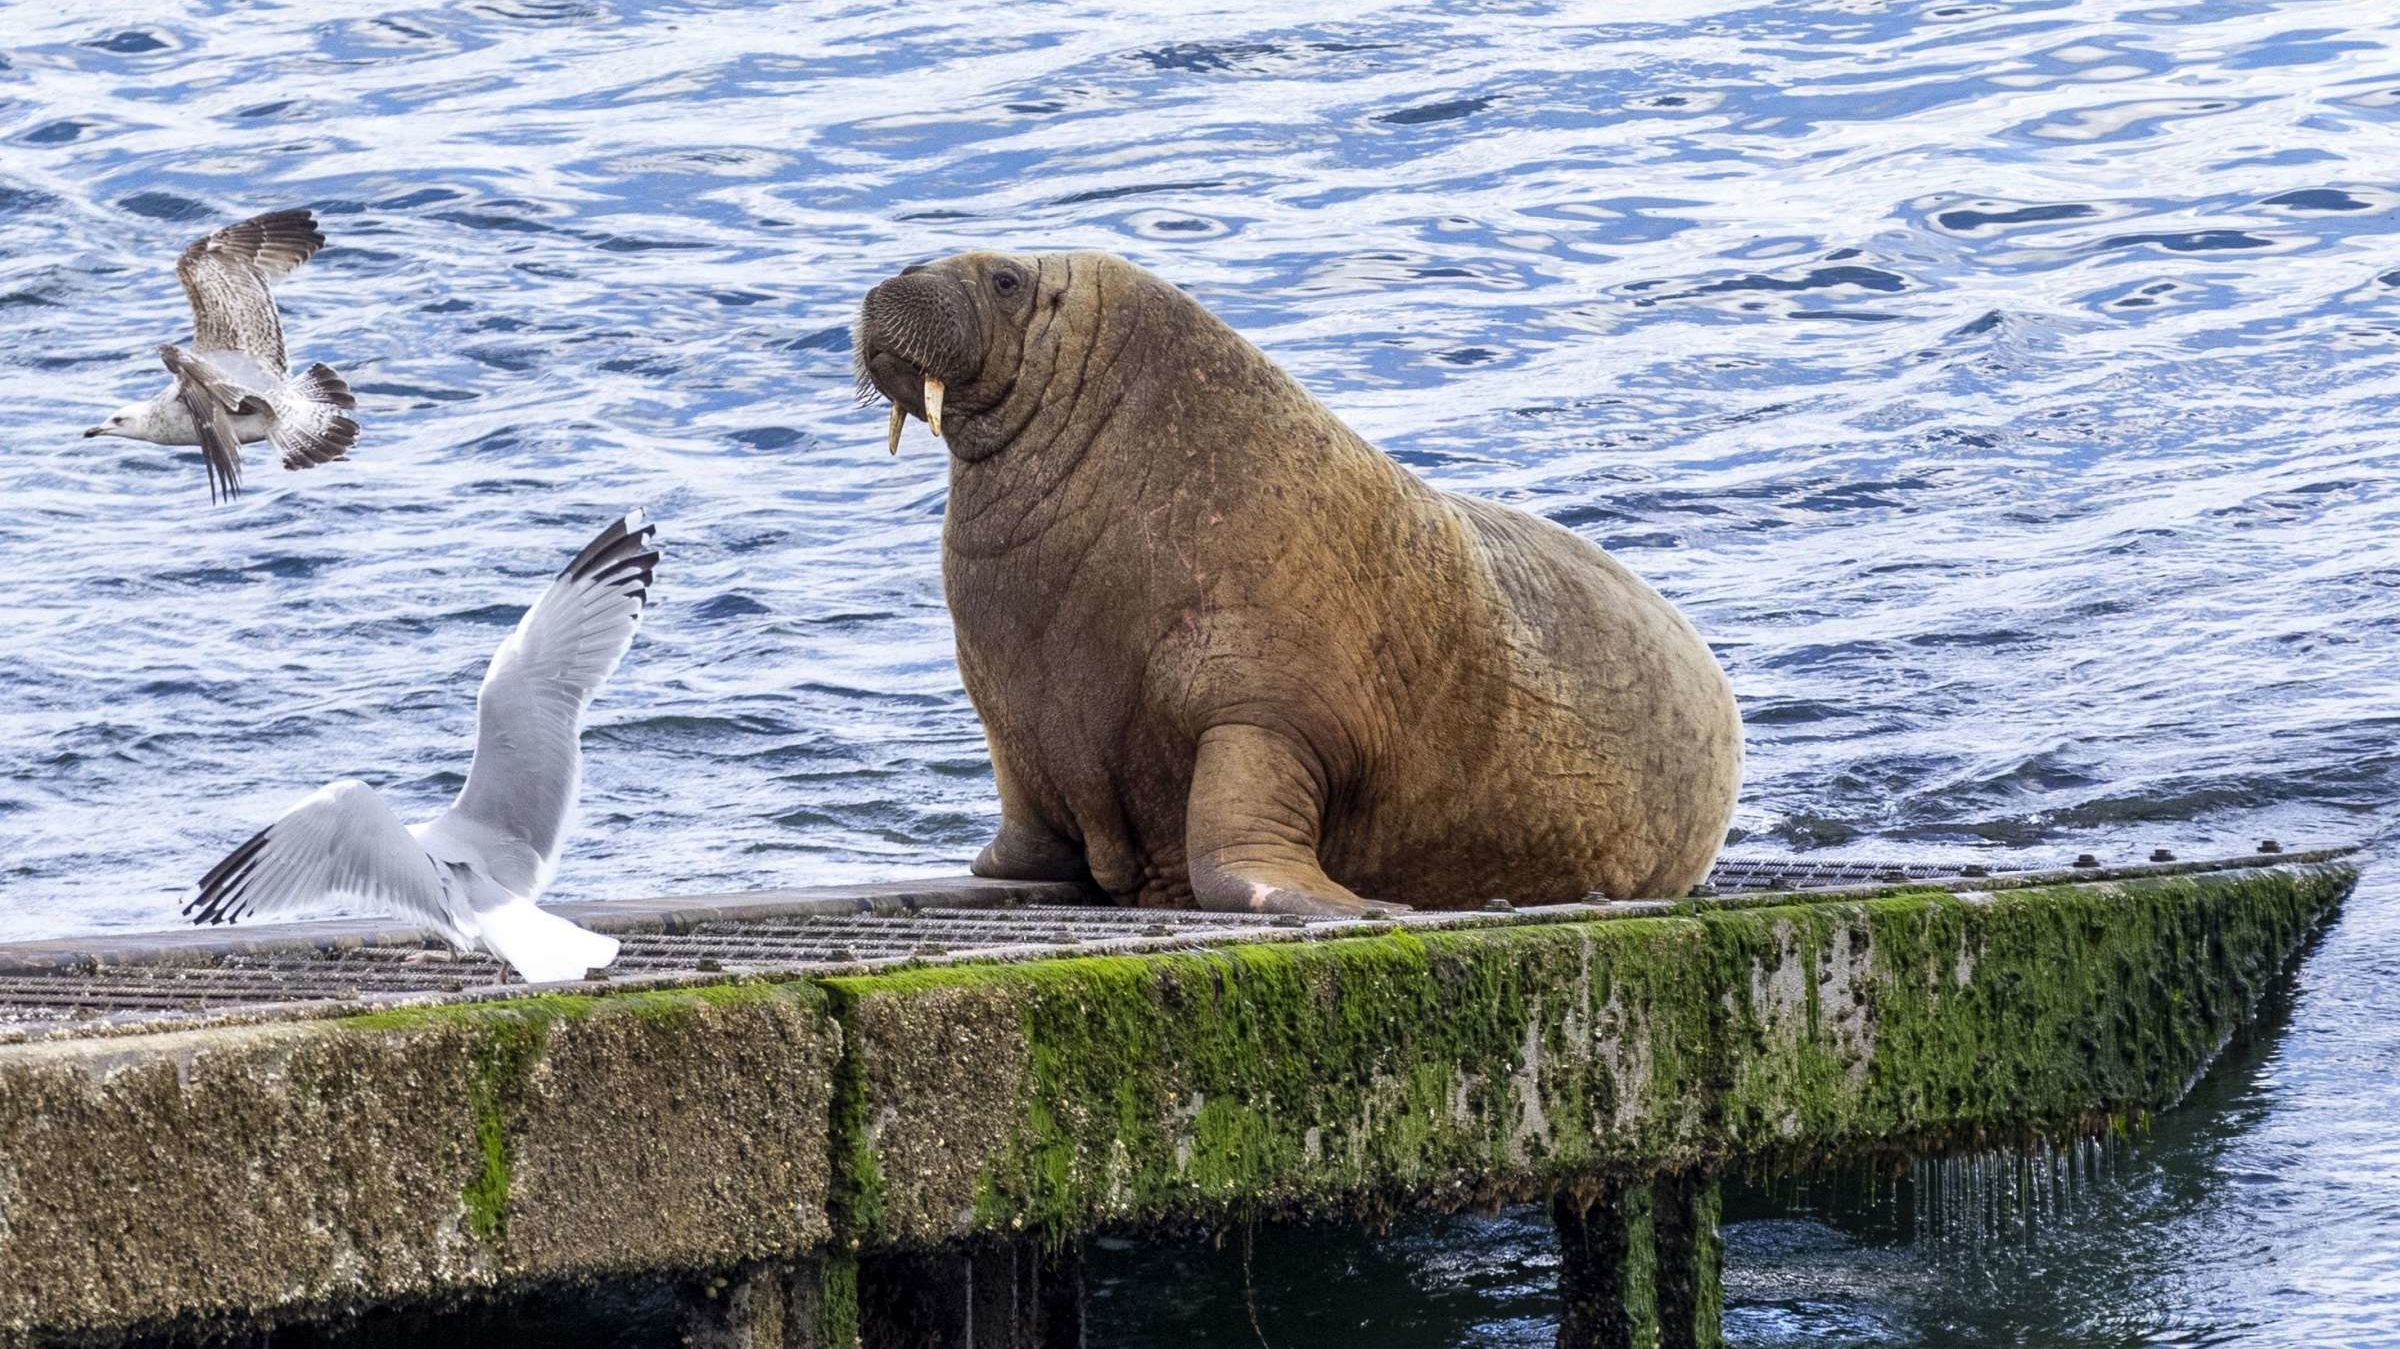 Wally, the Wandering Walrus Last Seen in Ireland, Was Just Spotted in Iceland